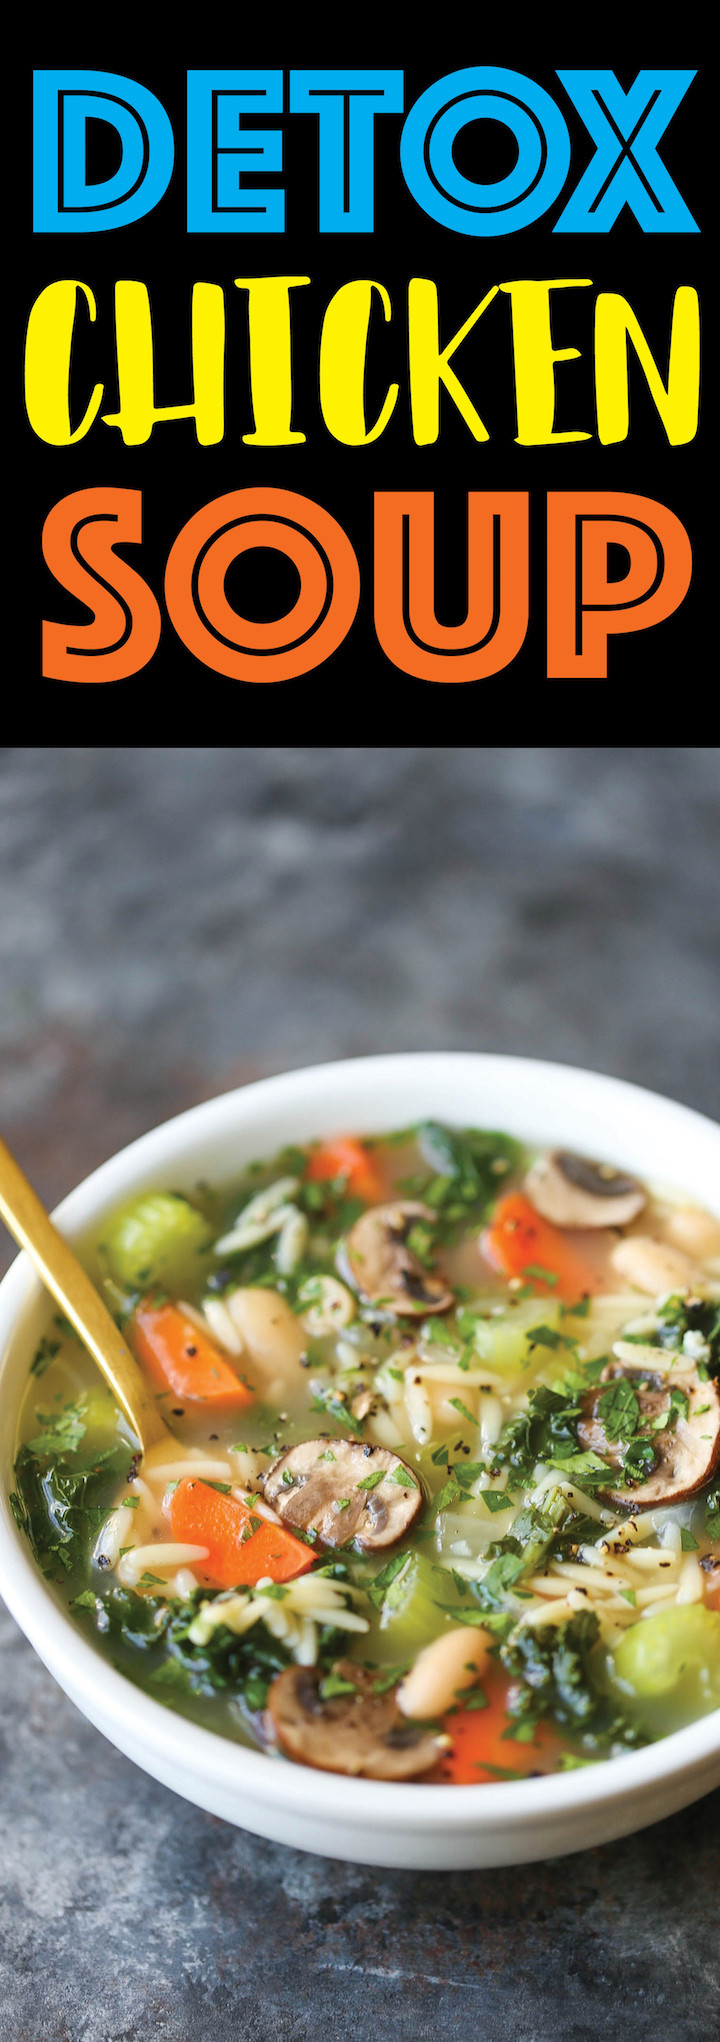 Healthy Chicken Soup  37 Healthy Weight Loss Chicken Recipes That Are Packed